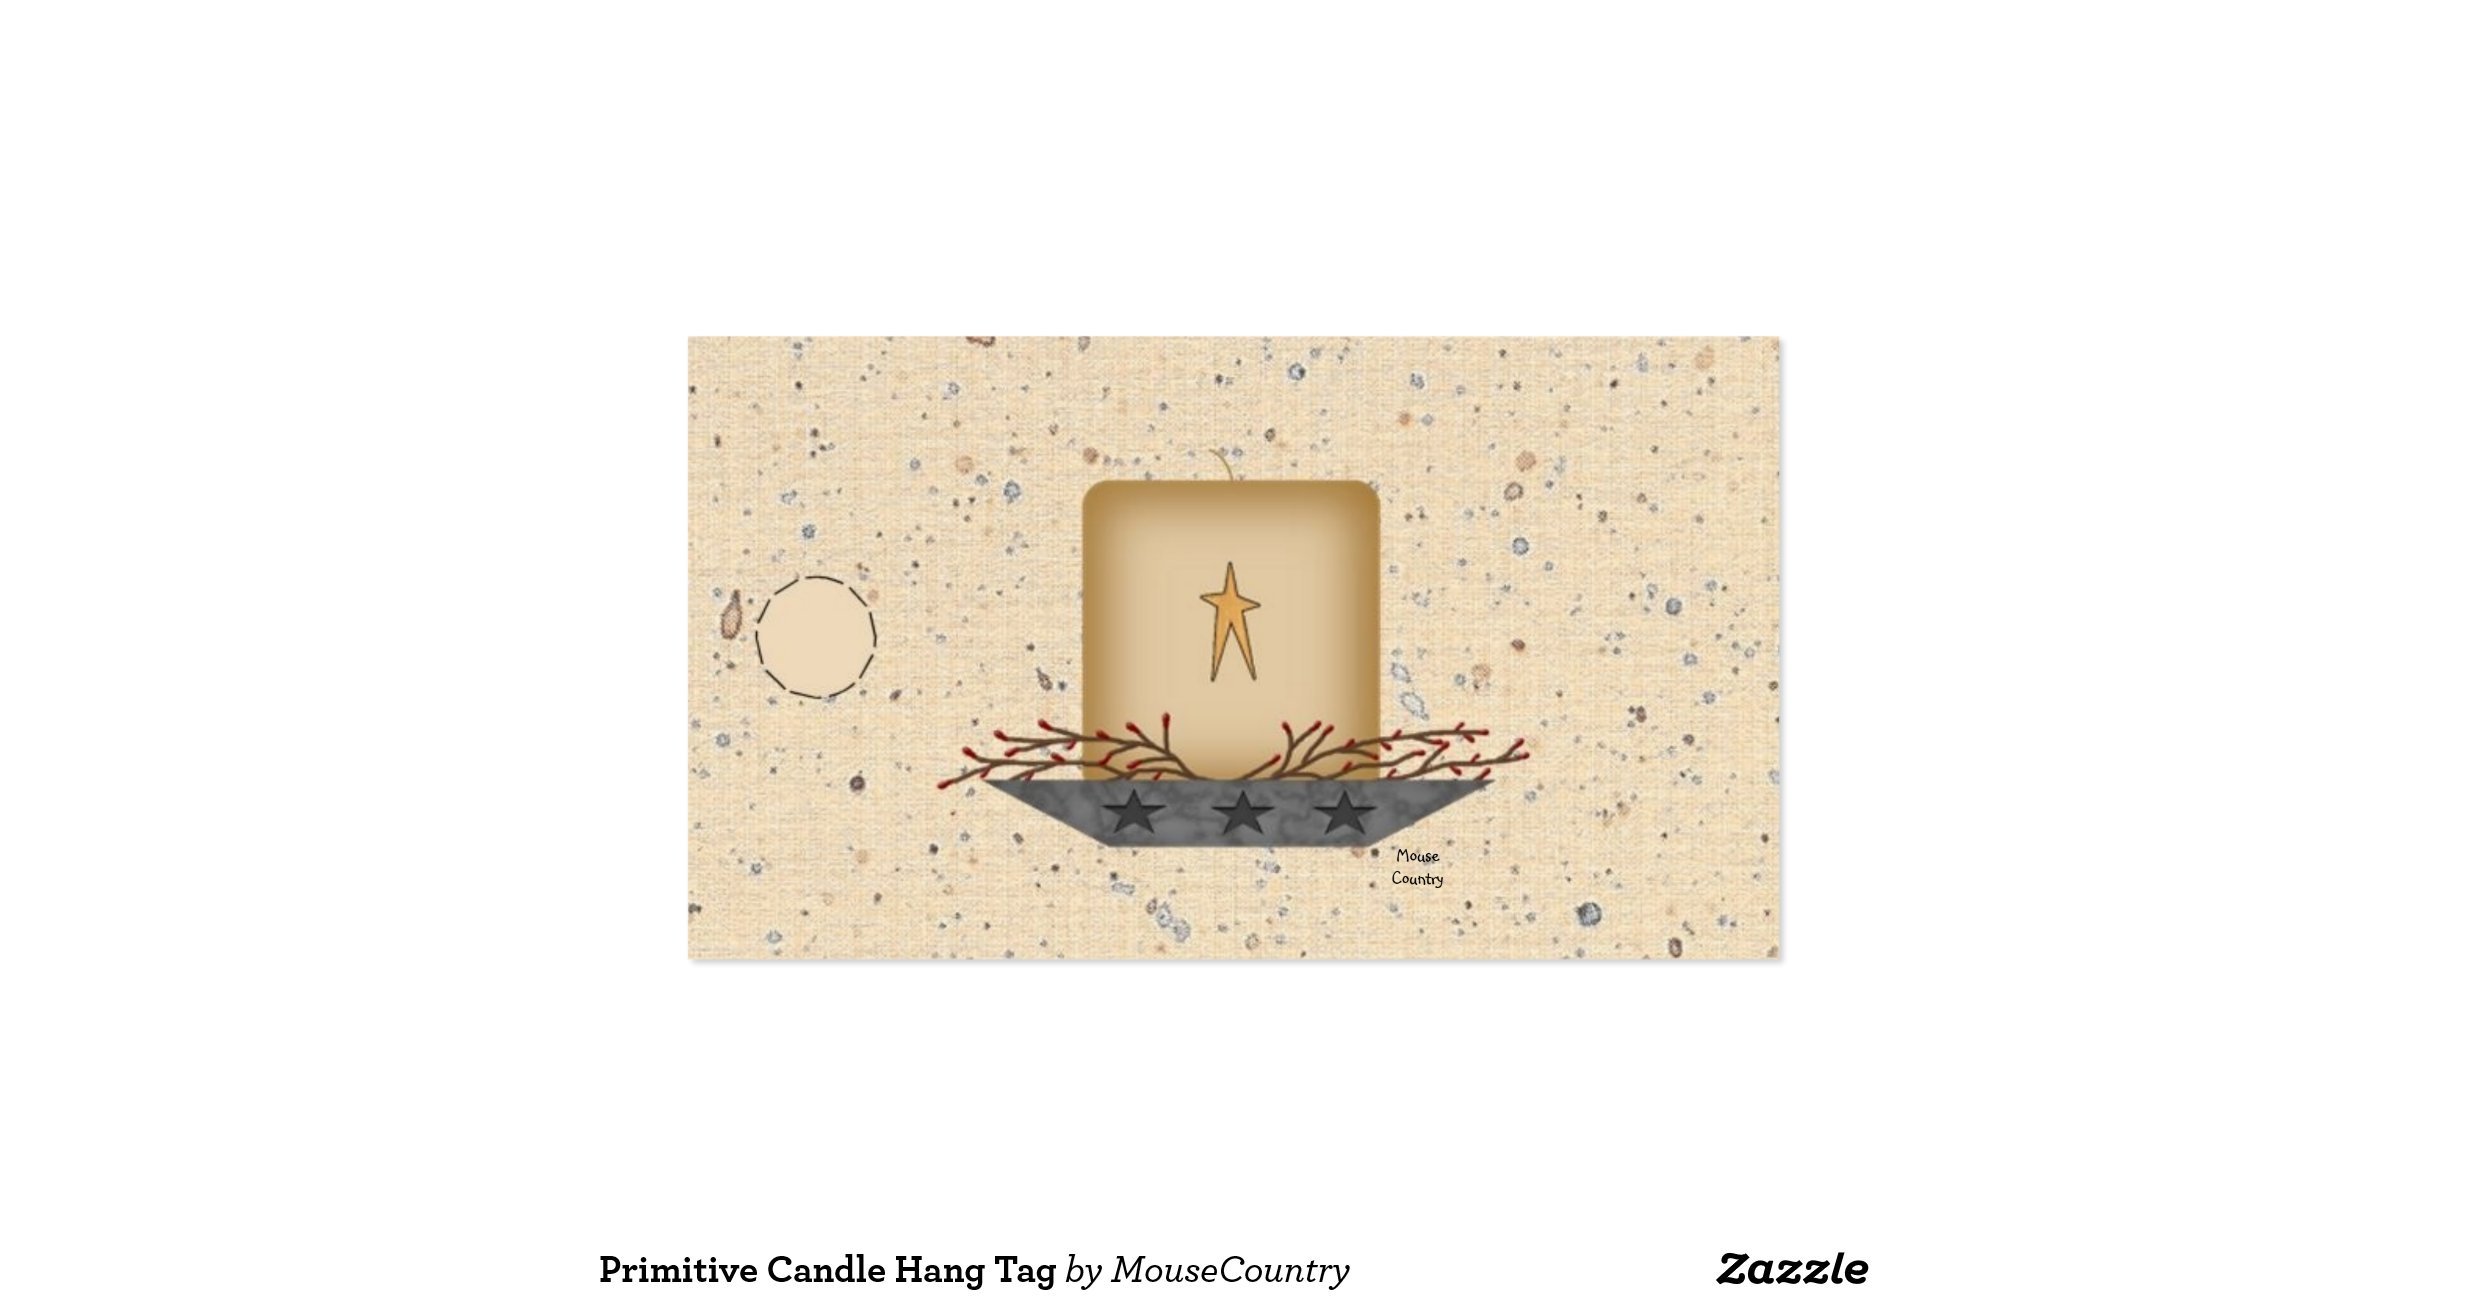 2 x 35 business card template business card sample primitive candle hang tag pack of standard business cards zazzle colourmoves